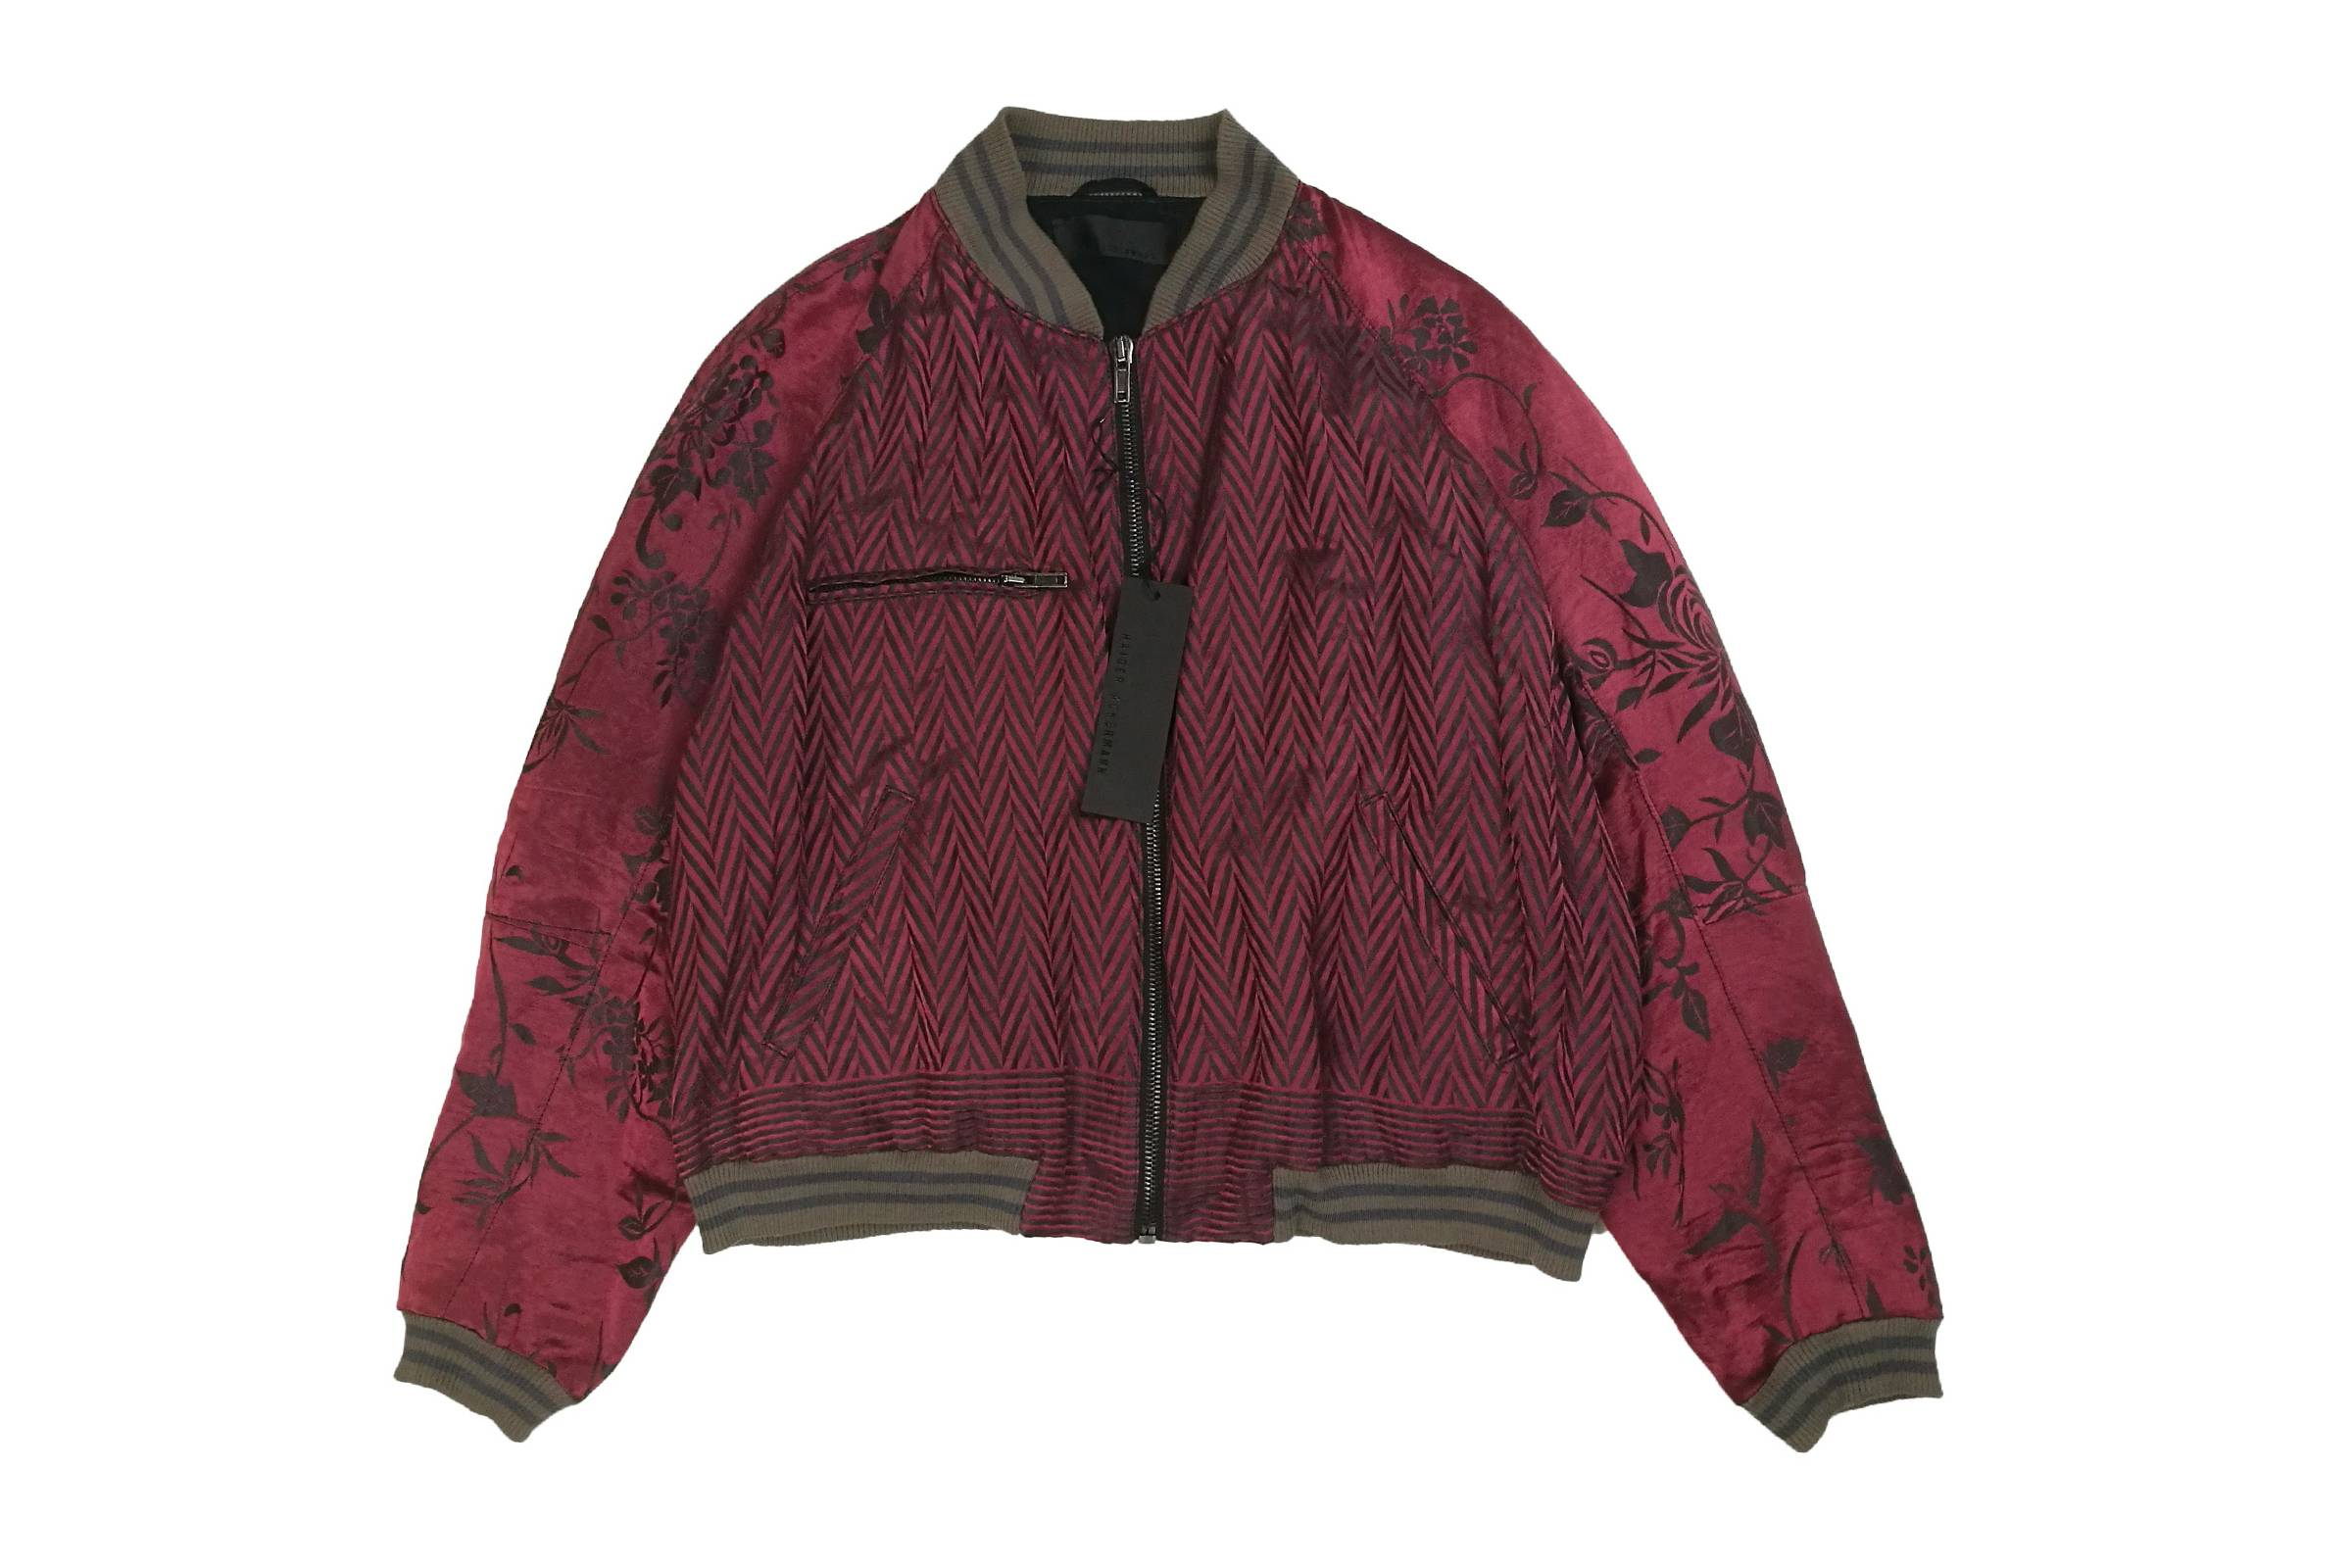 Haider Ackermann Chevron and Floral Brocade Bomber Jacket